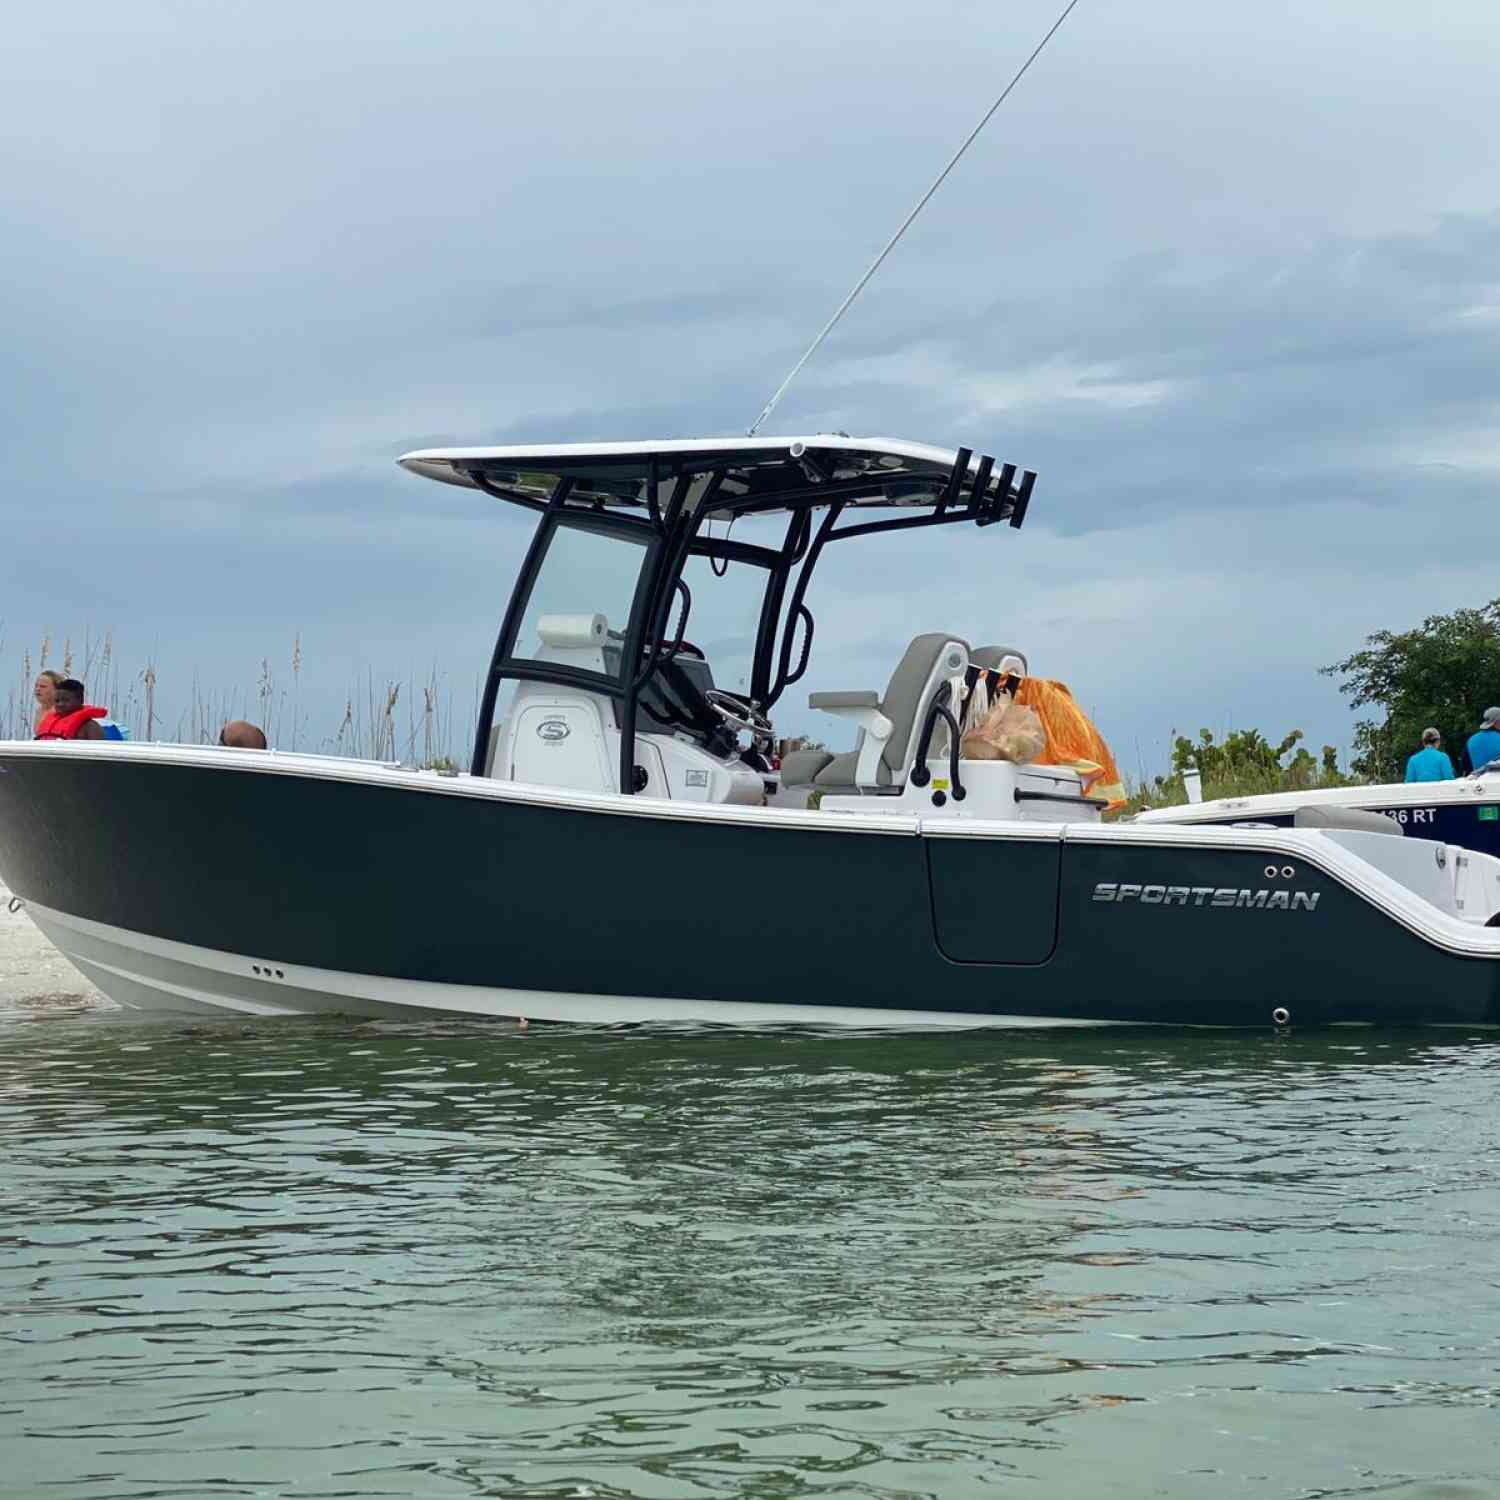 Title: Weekend Getaway - On board their Sportsman Open 282 Center Console - Location: Keewaydin Island, Florida. Participating in the Photo Contest #SportsmanMay2021